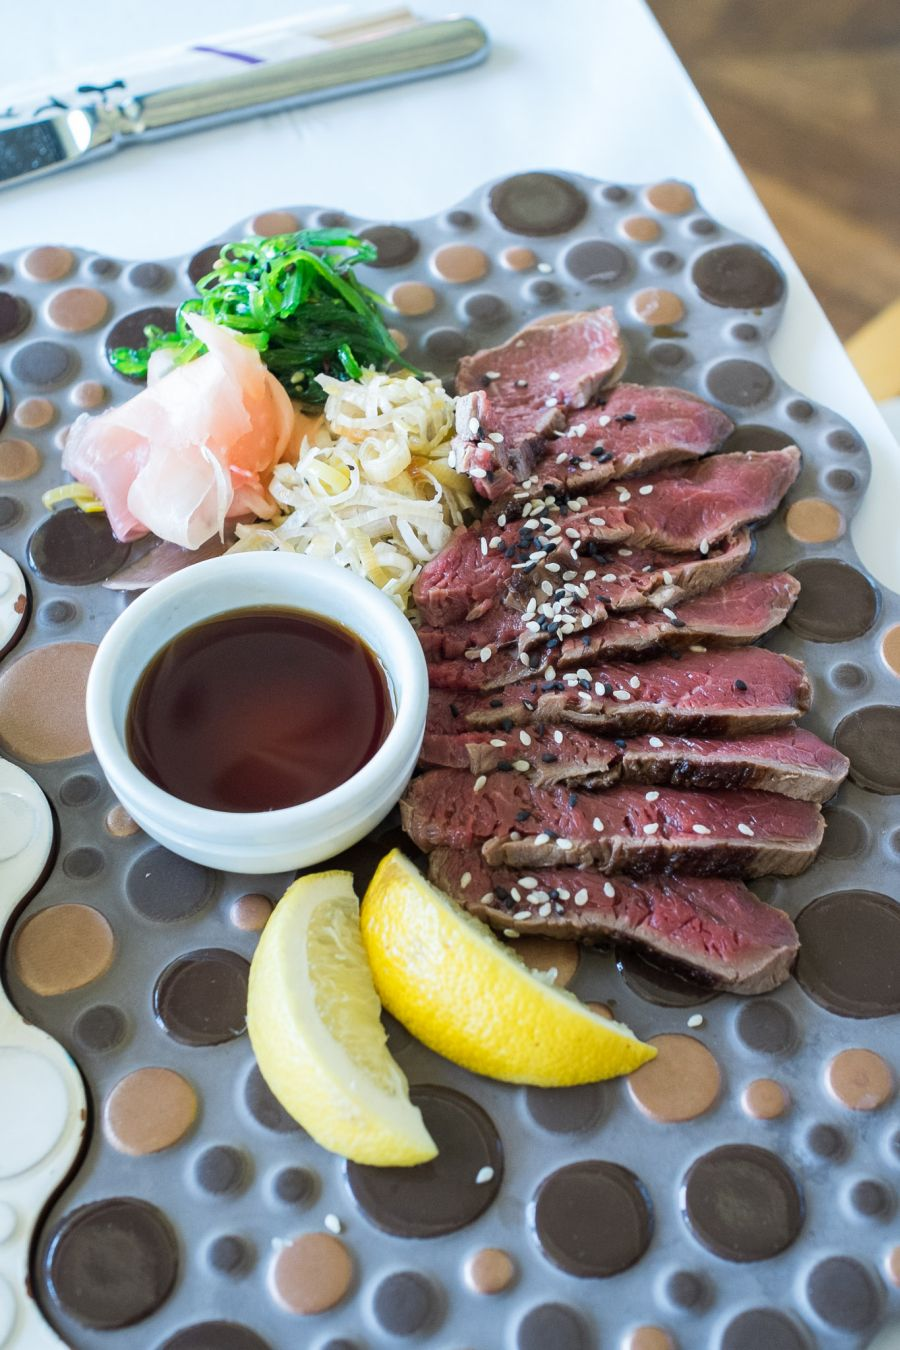 Beef tataki (AU$19) - thinly sliced aged beef fillet, served with slow braised leek, ponzu sauce